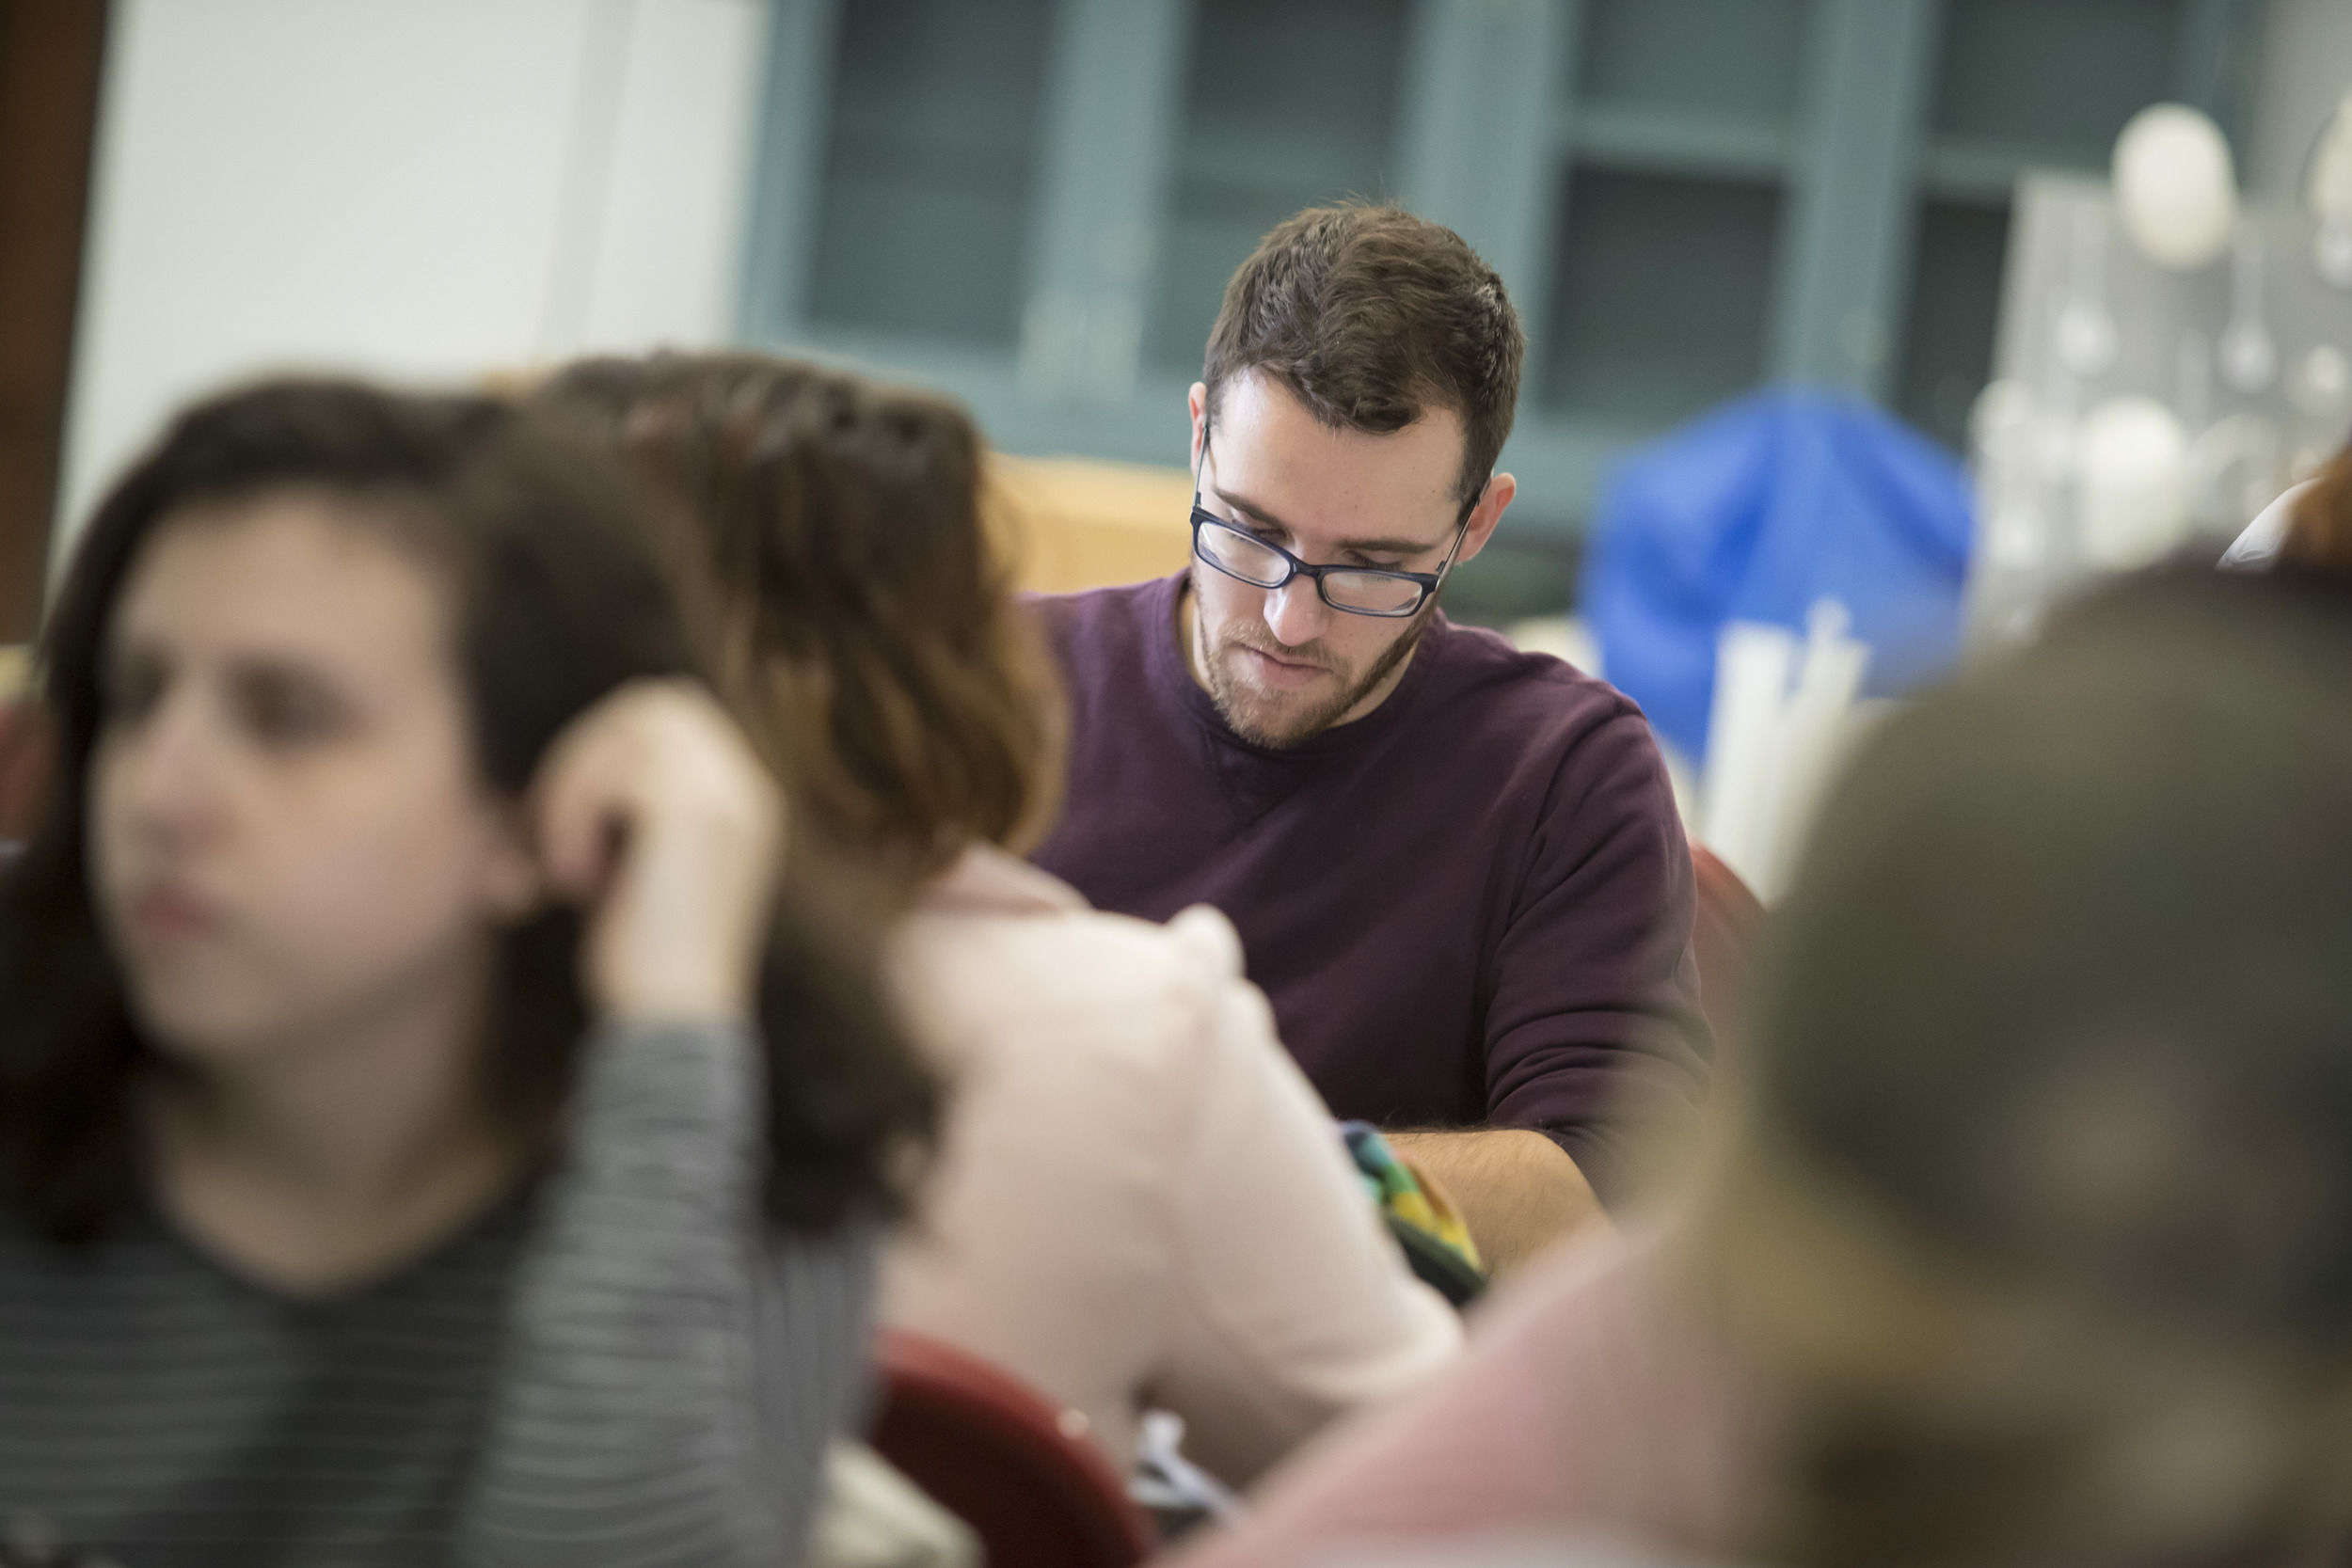 A group of Temple students are studying together.